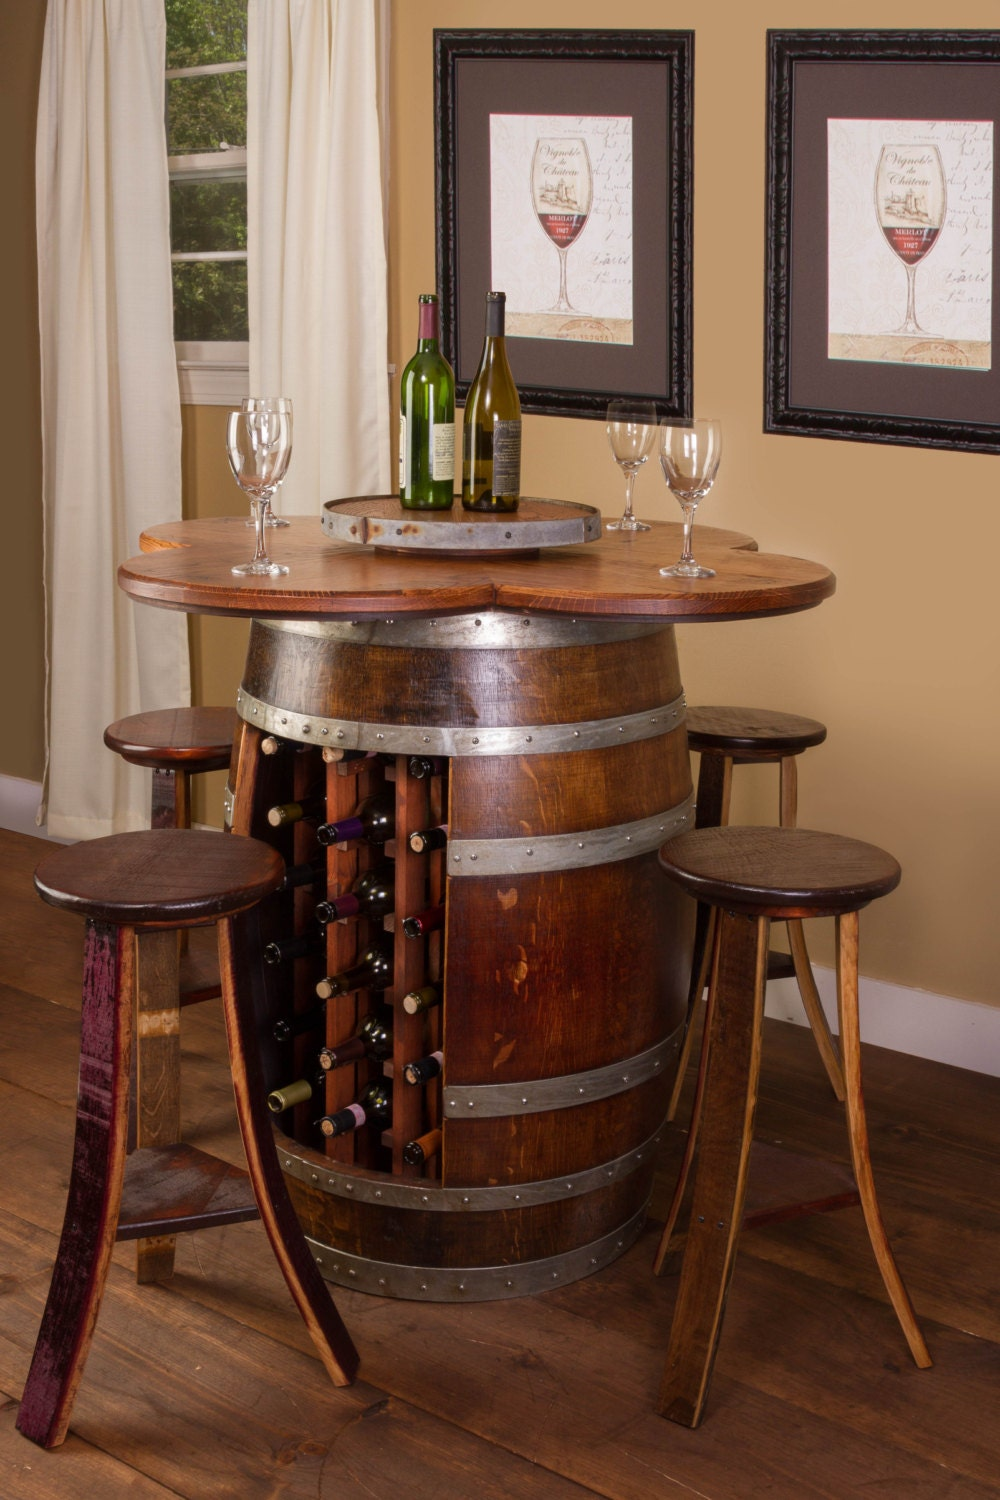 1002 wine barrel table set with wine rack barrel base. Black Bedroom Furniture Sets. Home Design Ideas